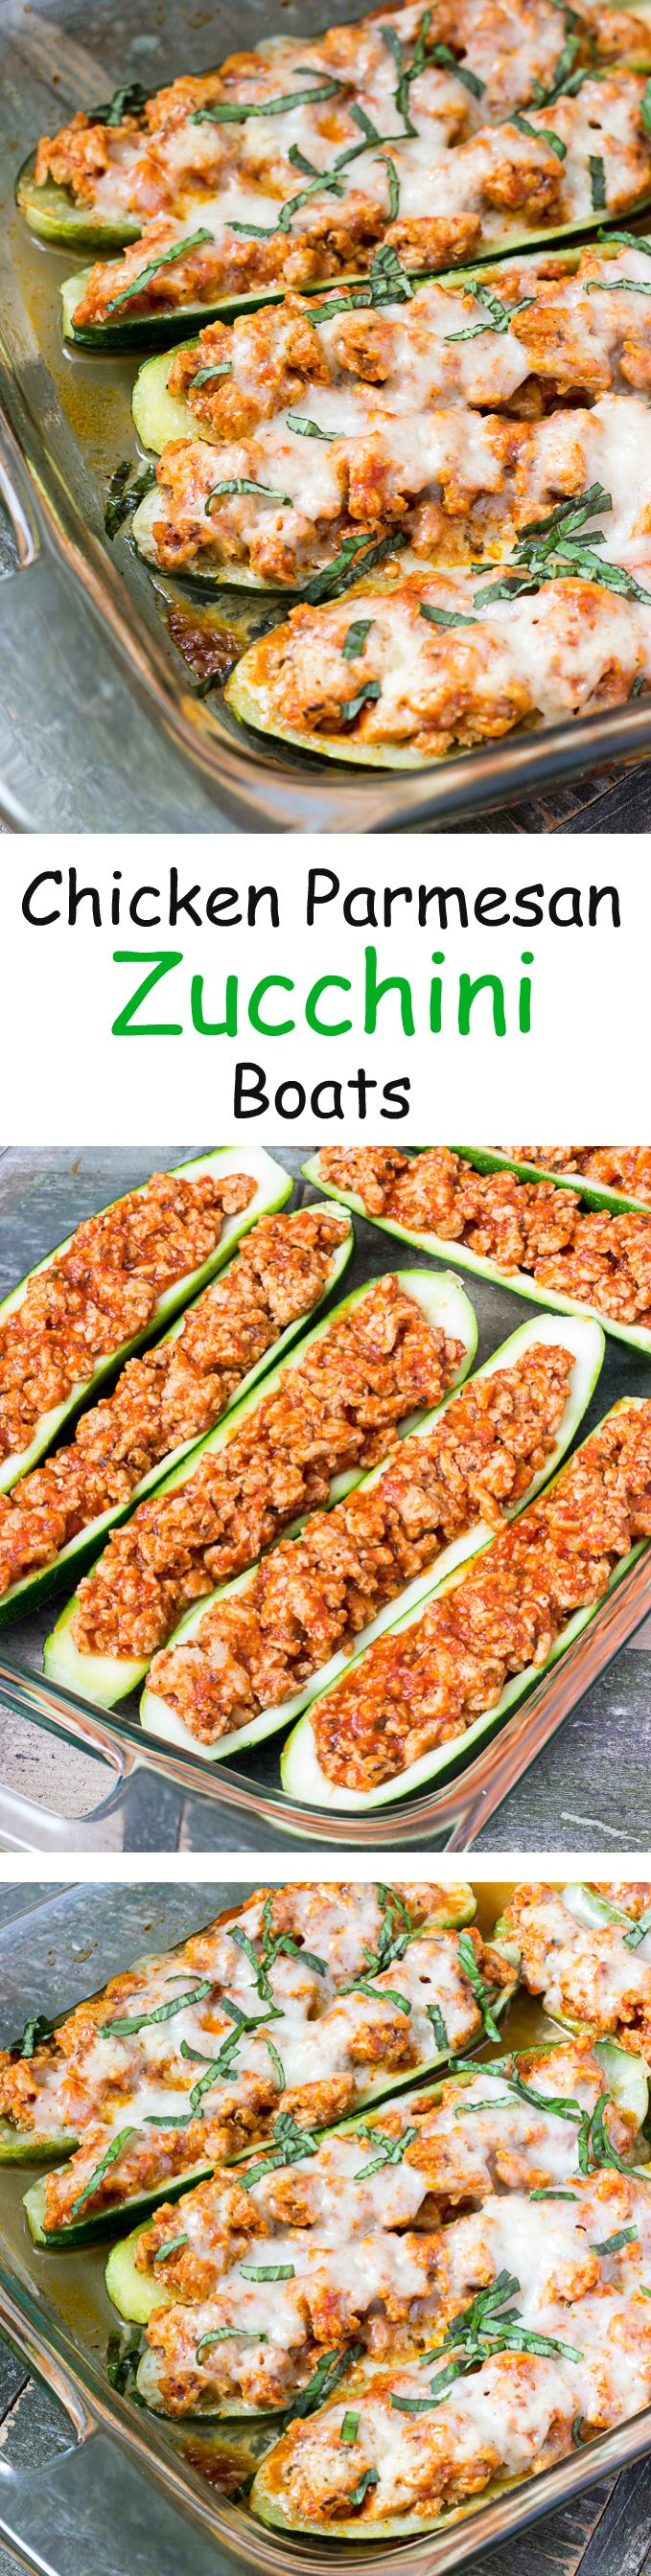 Chicken Parmesan Zucchini Boats - stuffed zucchini filled with chicken, pasta sauce, mozzarella, and parmesan cheese. #dinner